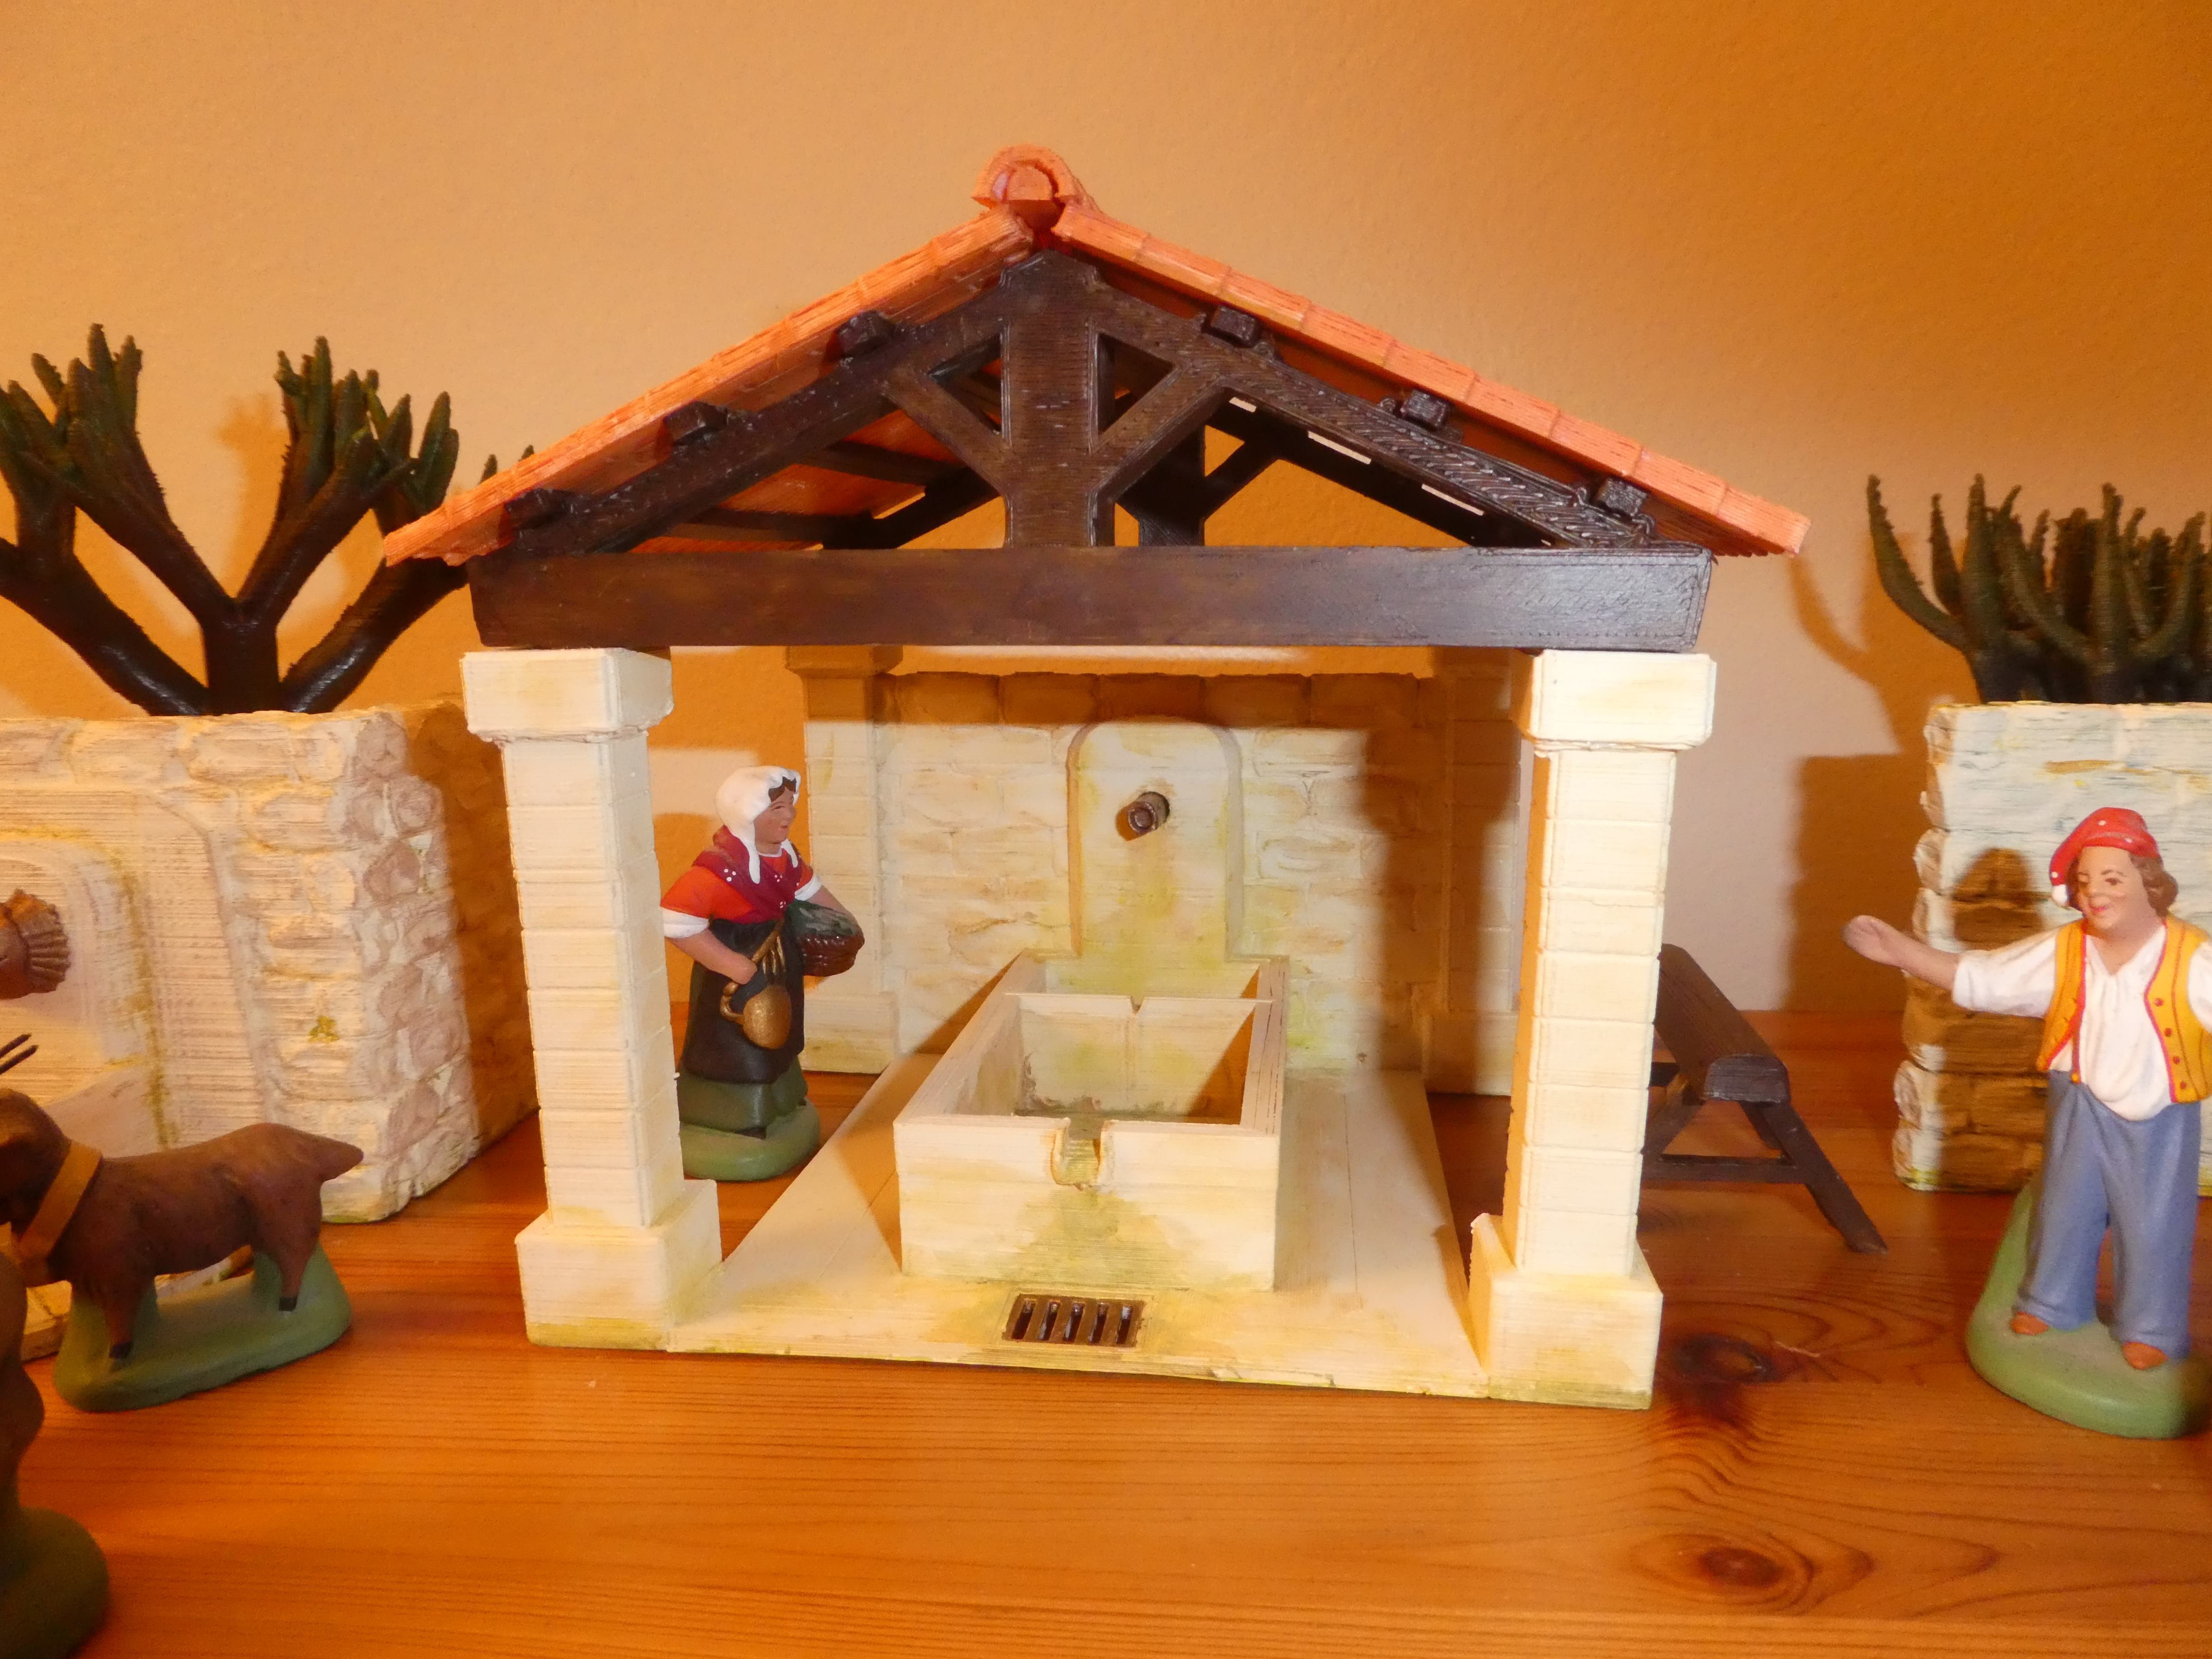 P1130434.JPG Download free STL file Provencal wash-house • 3D printable object, phipo333